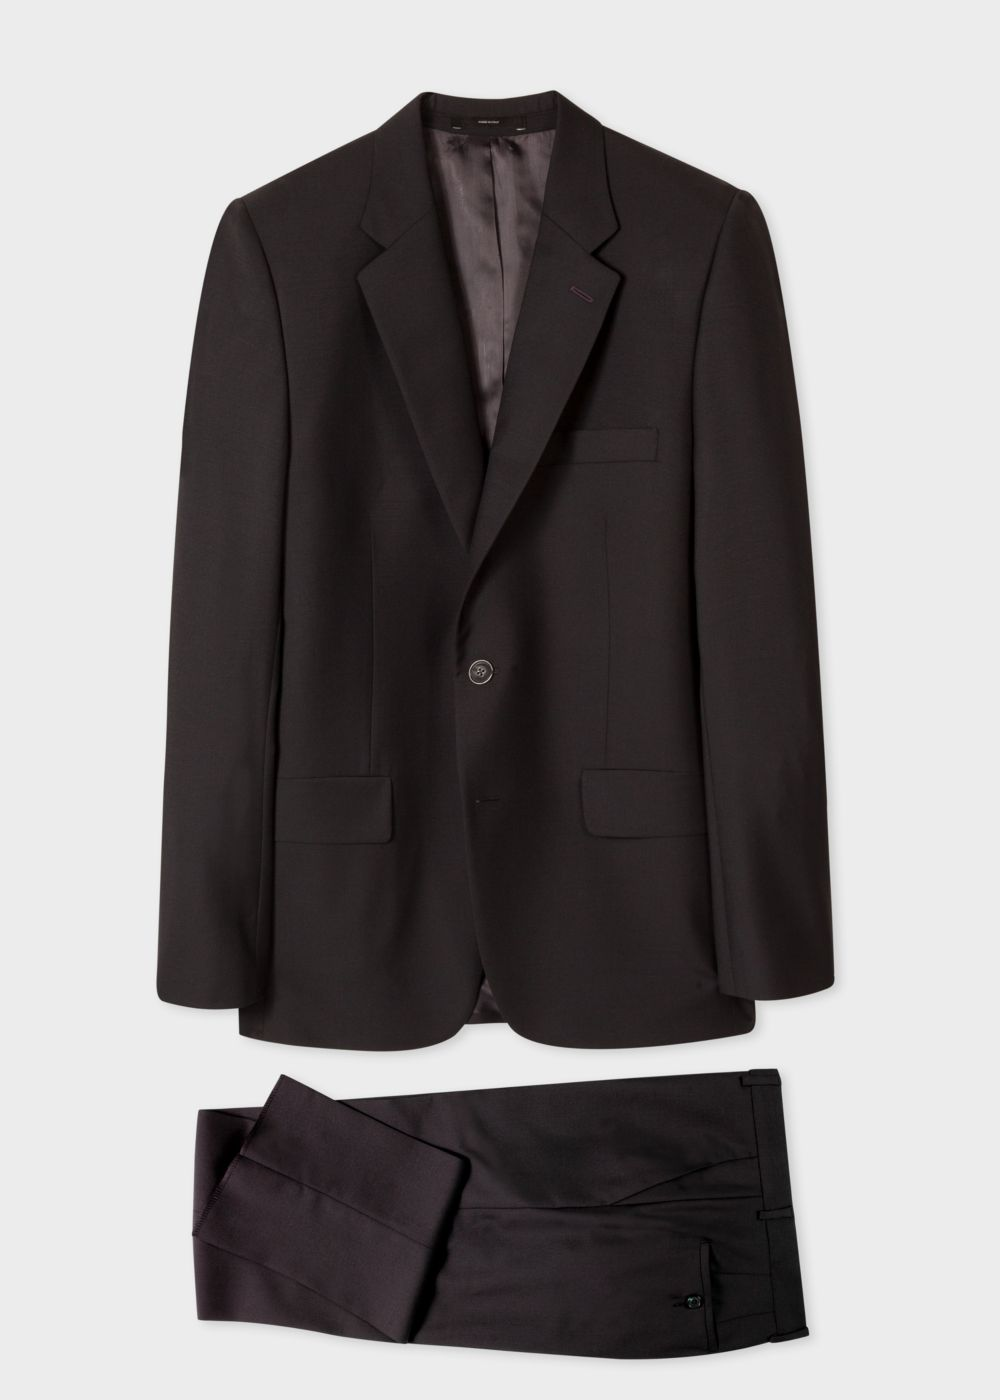 Paul Smith The Mayfair - Men's Classic-Fit Black Wool-Mohair 'Suit To Travel In'